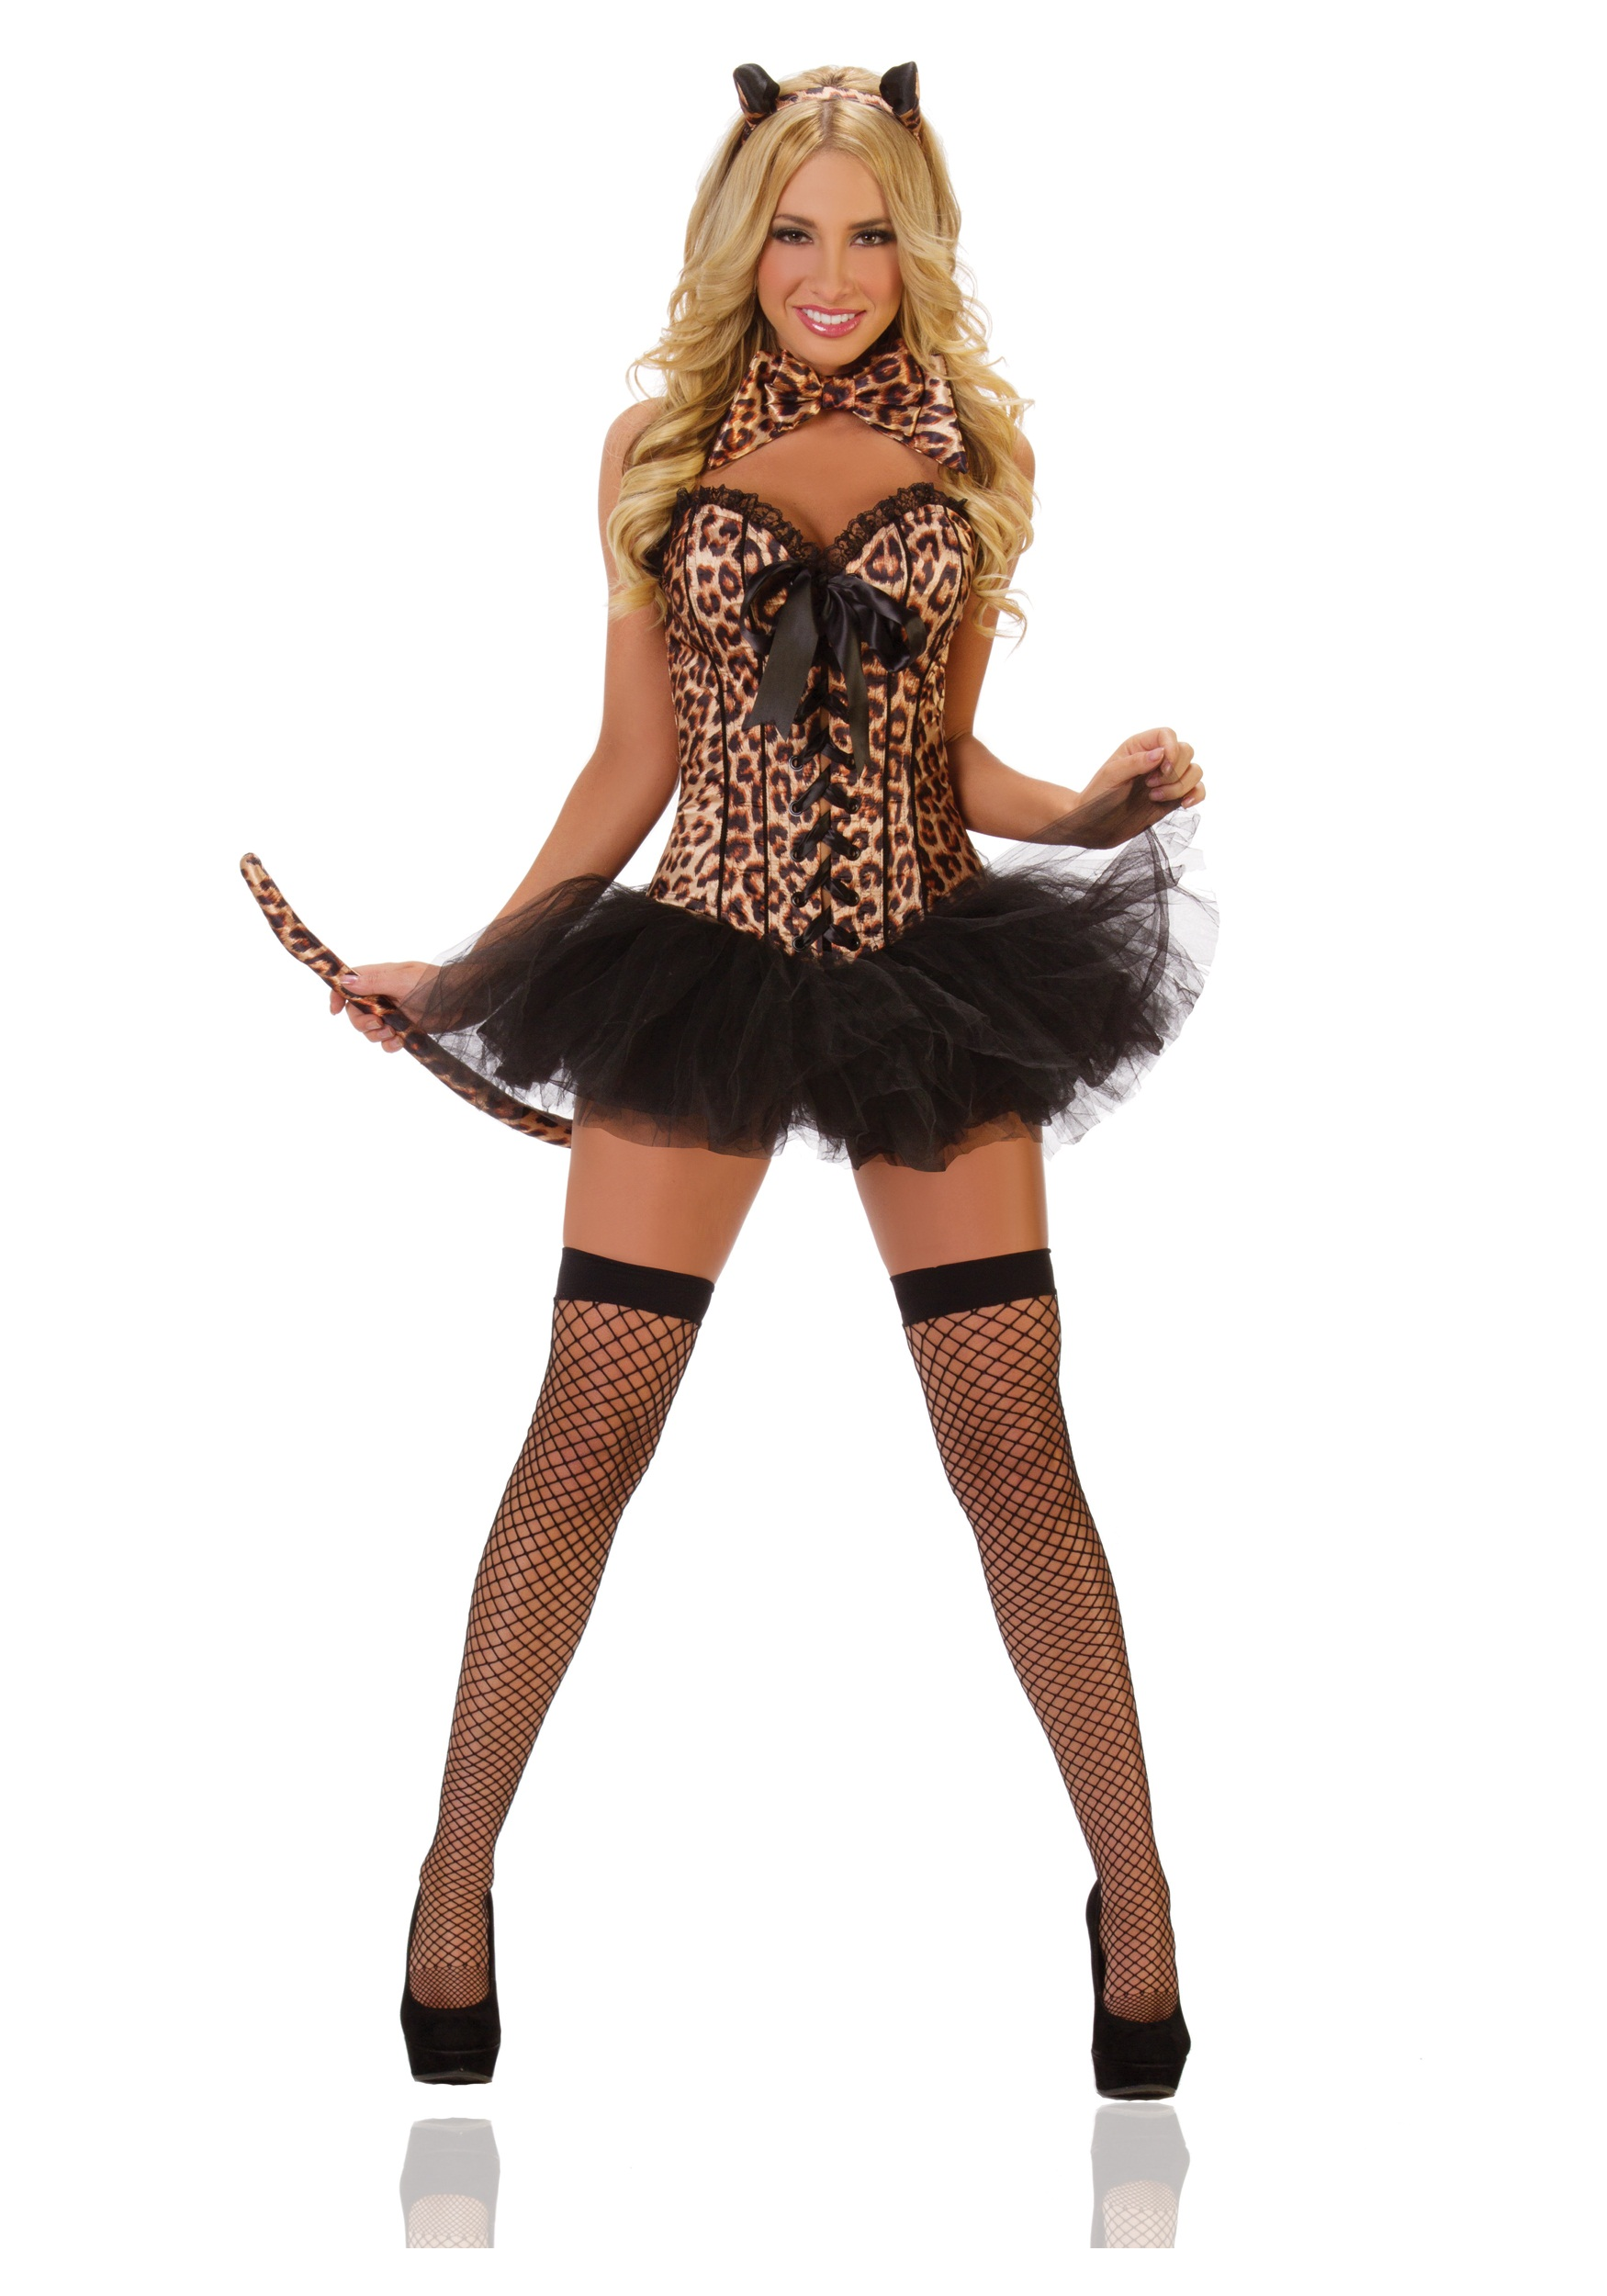 027e47654a07 Sexy Cat Costumes | Buy Sexy Cat Costumes at CostumeVip